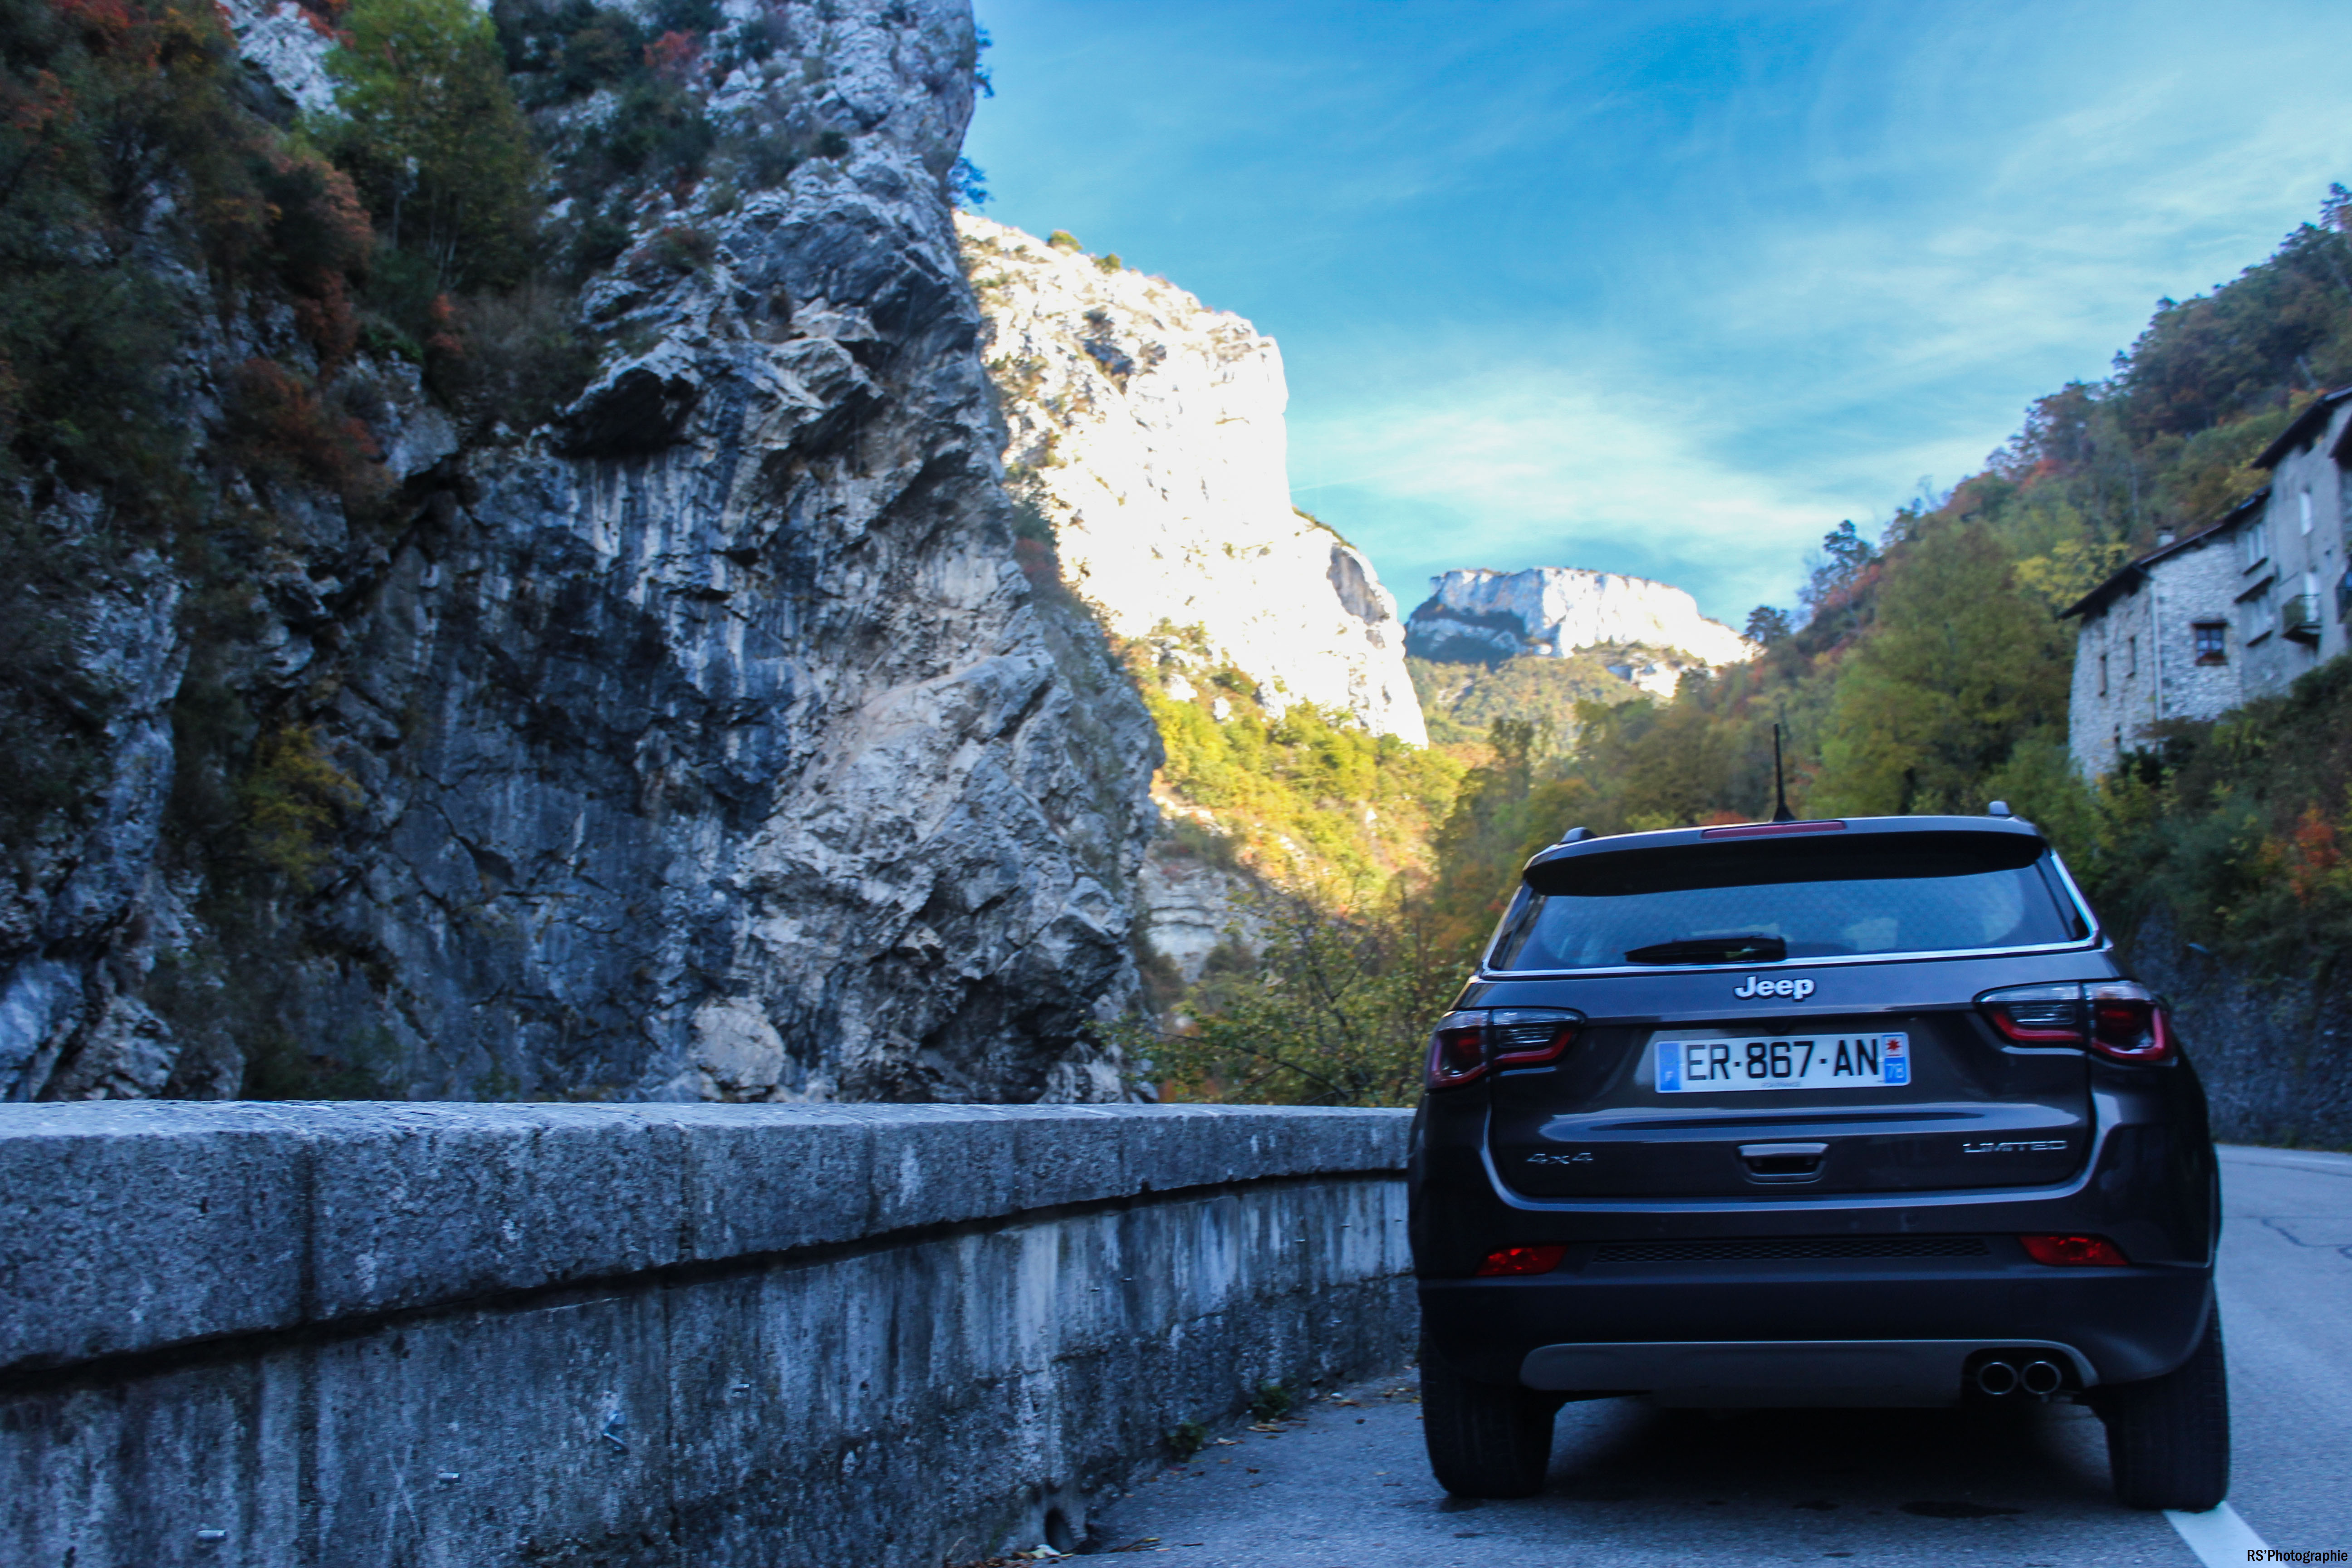 jeepcompass3-jeep-compass-arriere-rear-Arnaud Demasier-RSPhotographie